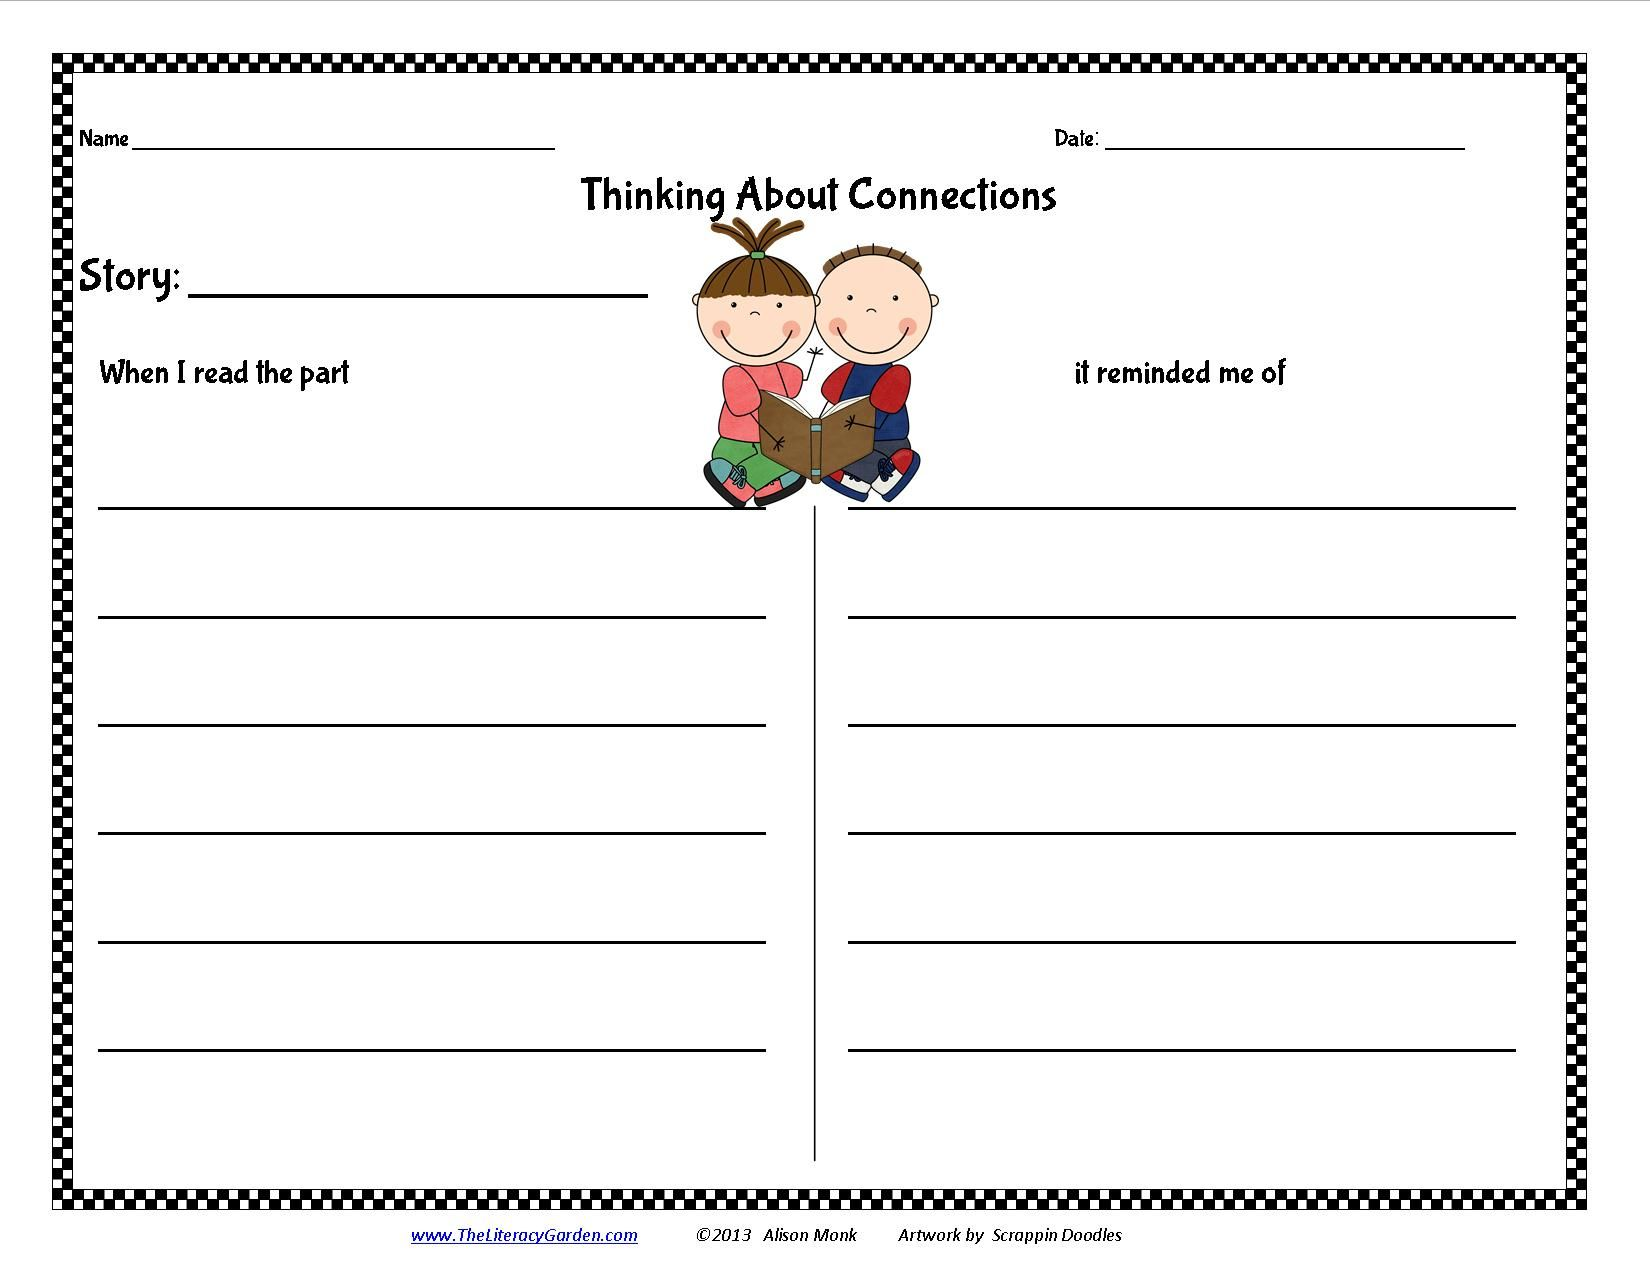 Making Connections Form Available From Theliteracygarden